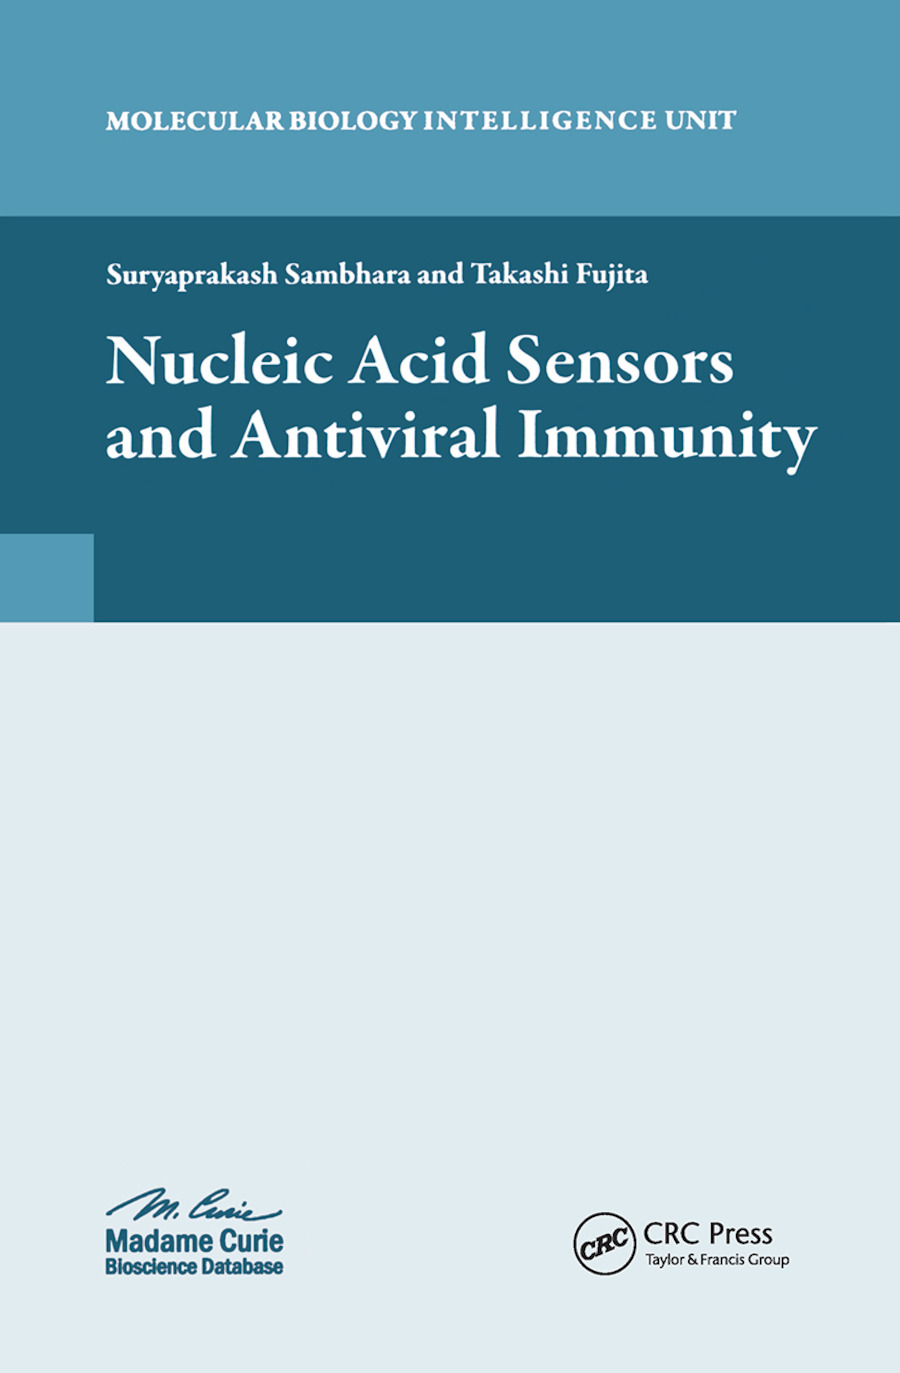 Nucleic Acid Sensors and Antiviral Immunity: 1st Edition (Paperback) book cover